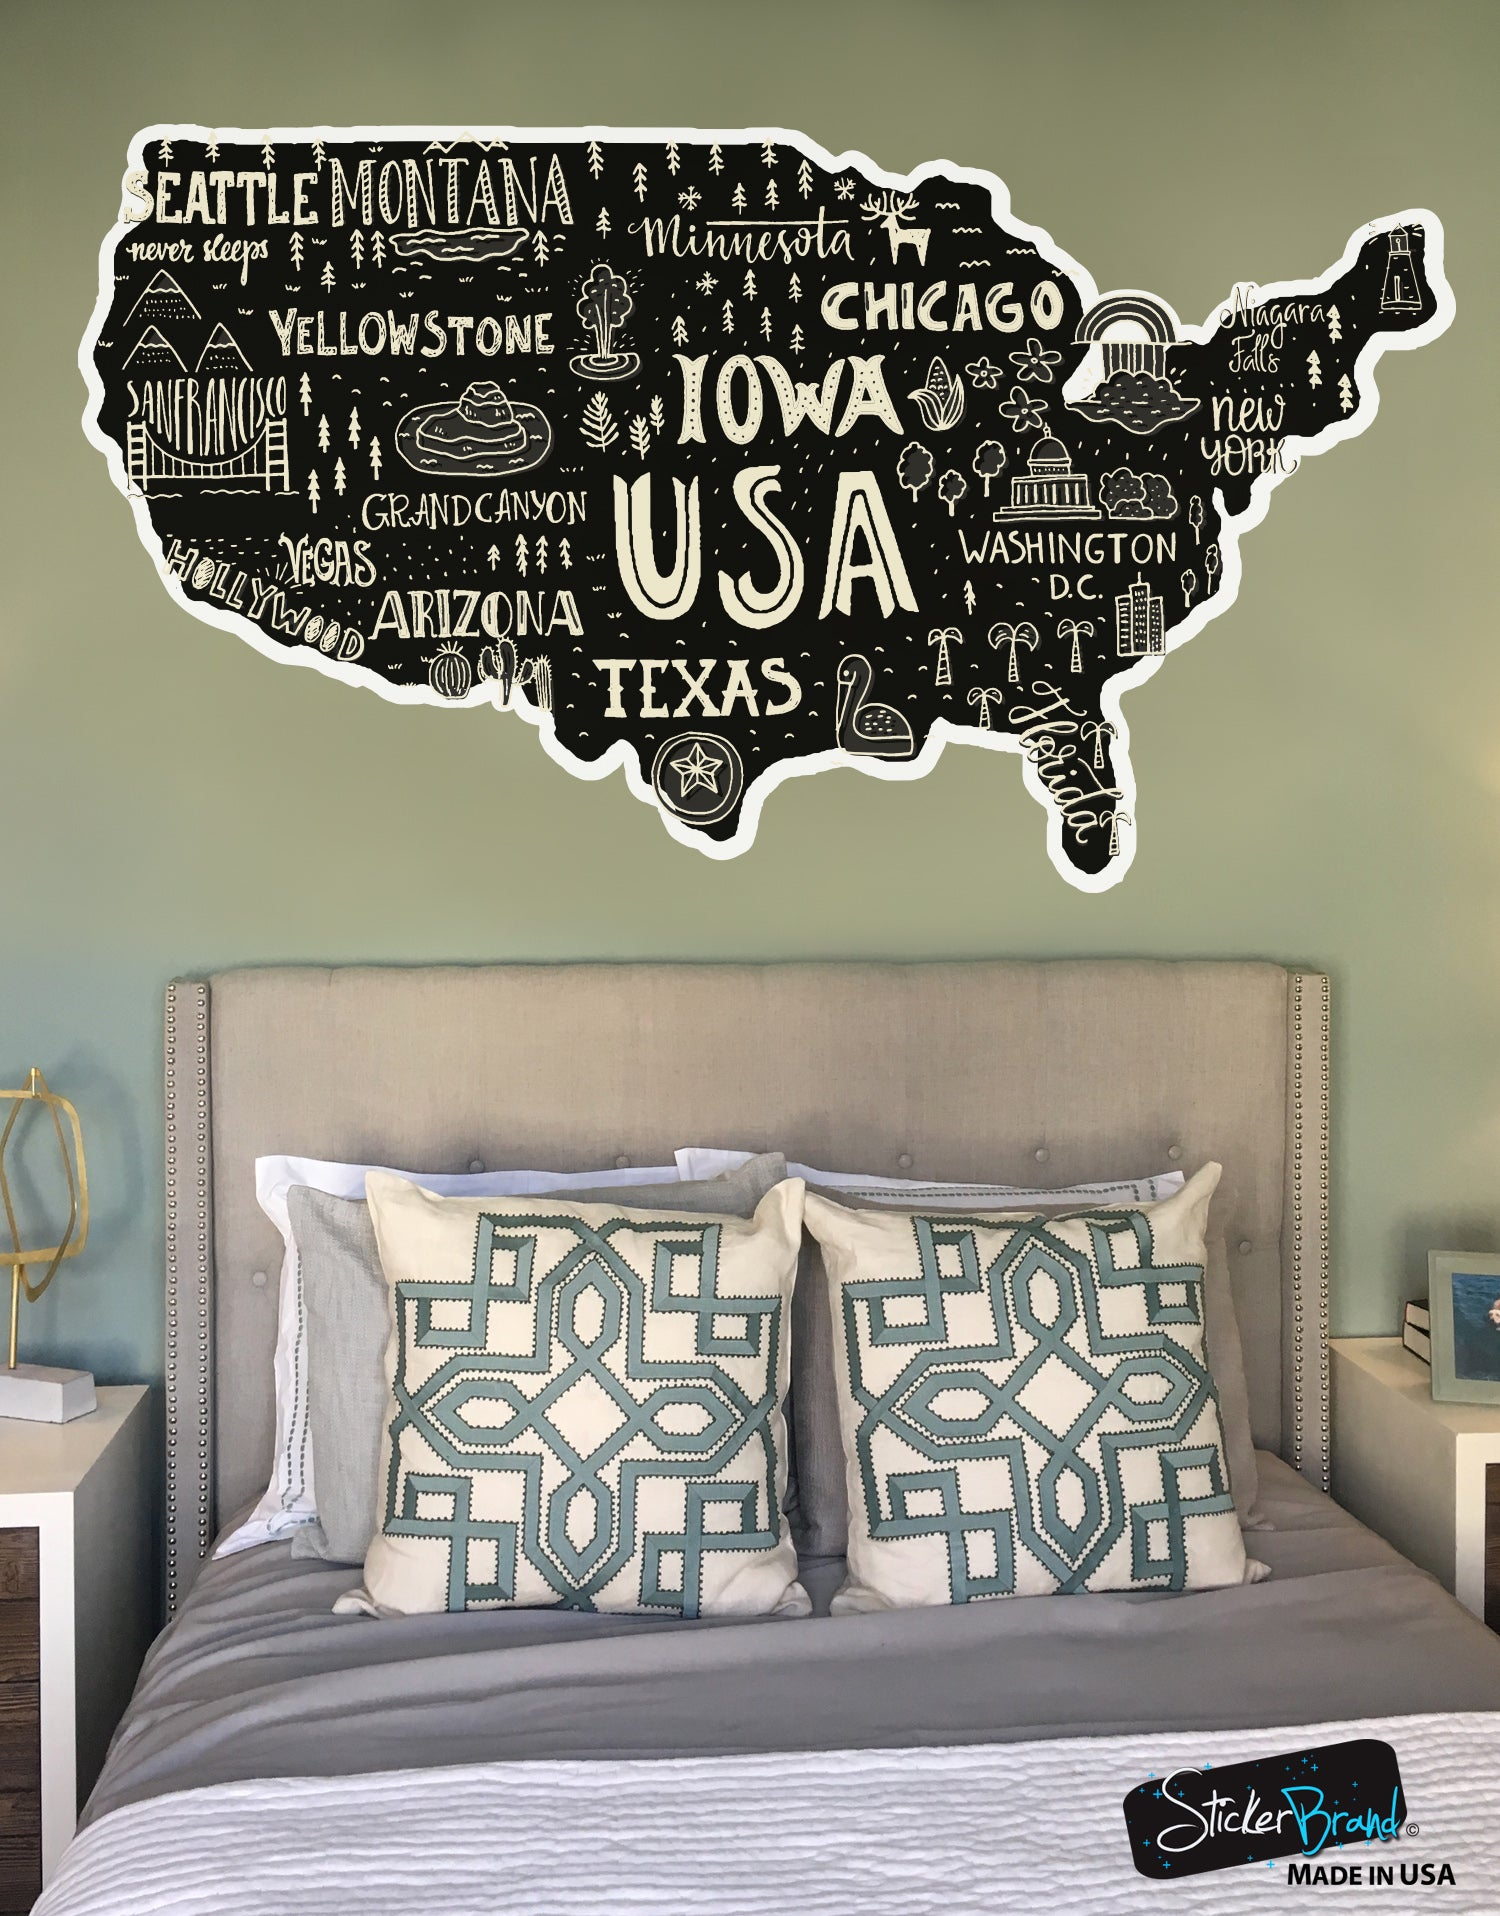 Hand Drawn Us Map.Hand Drawn Illustration Of Usa Map Graphic Wall Decal Sticker 6104